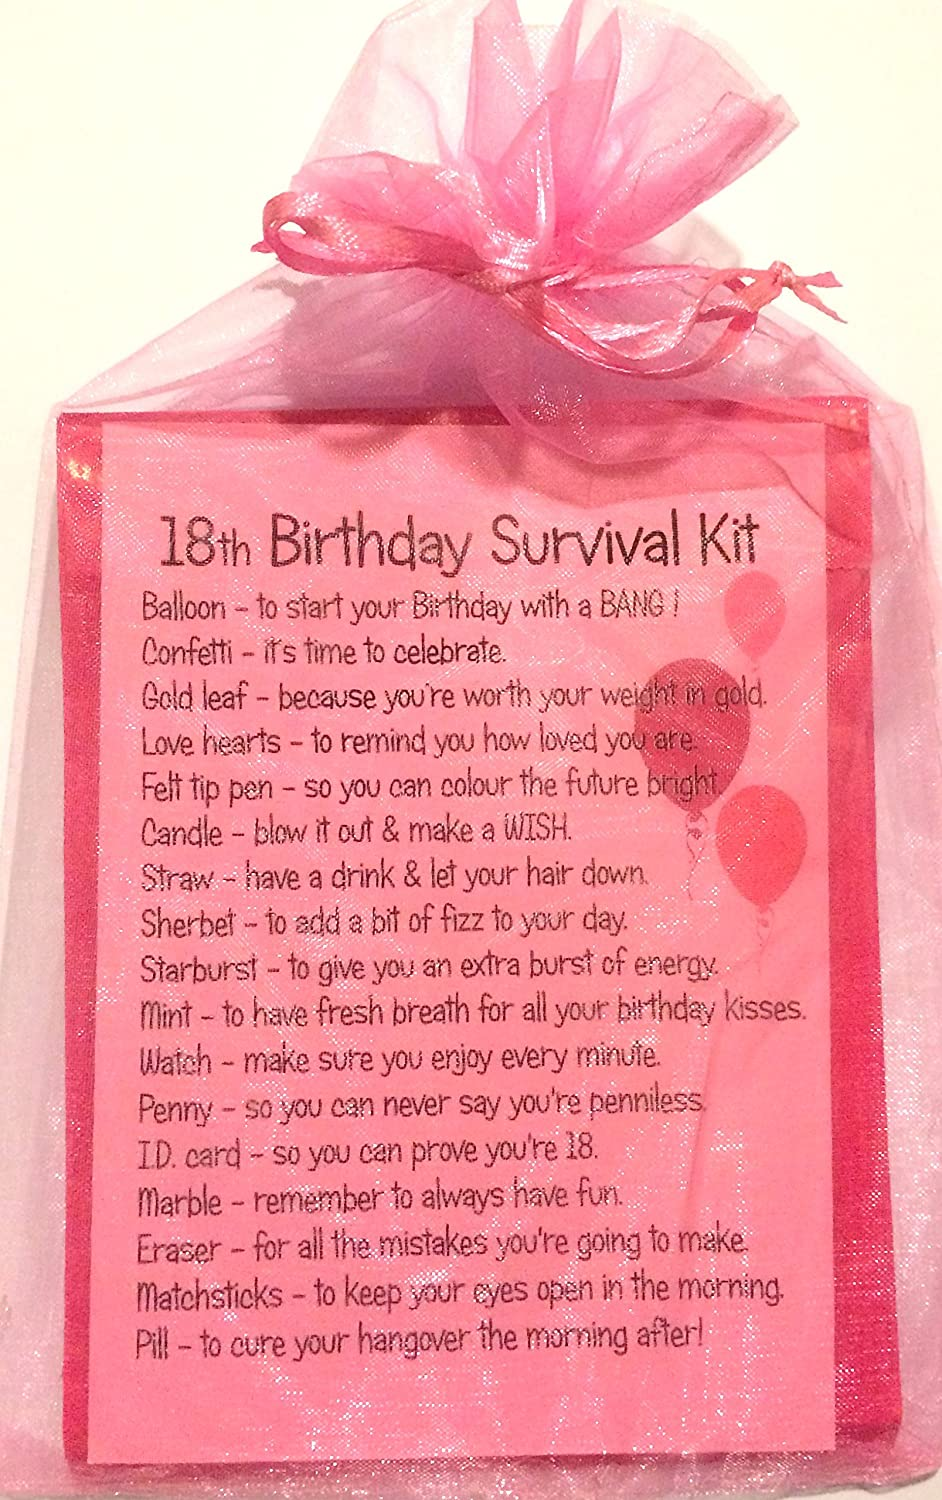 18th BIRTHDAY SURVIVAL KIT PINK GIFT CARD PRESENT: Amazon.co.uk ...